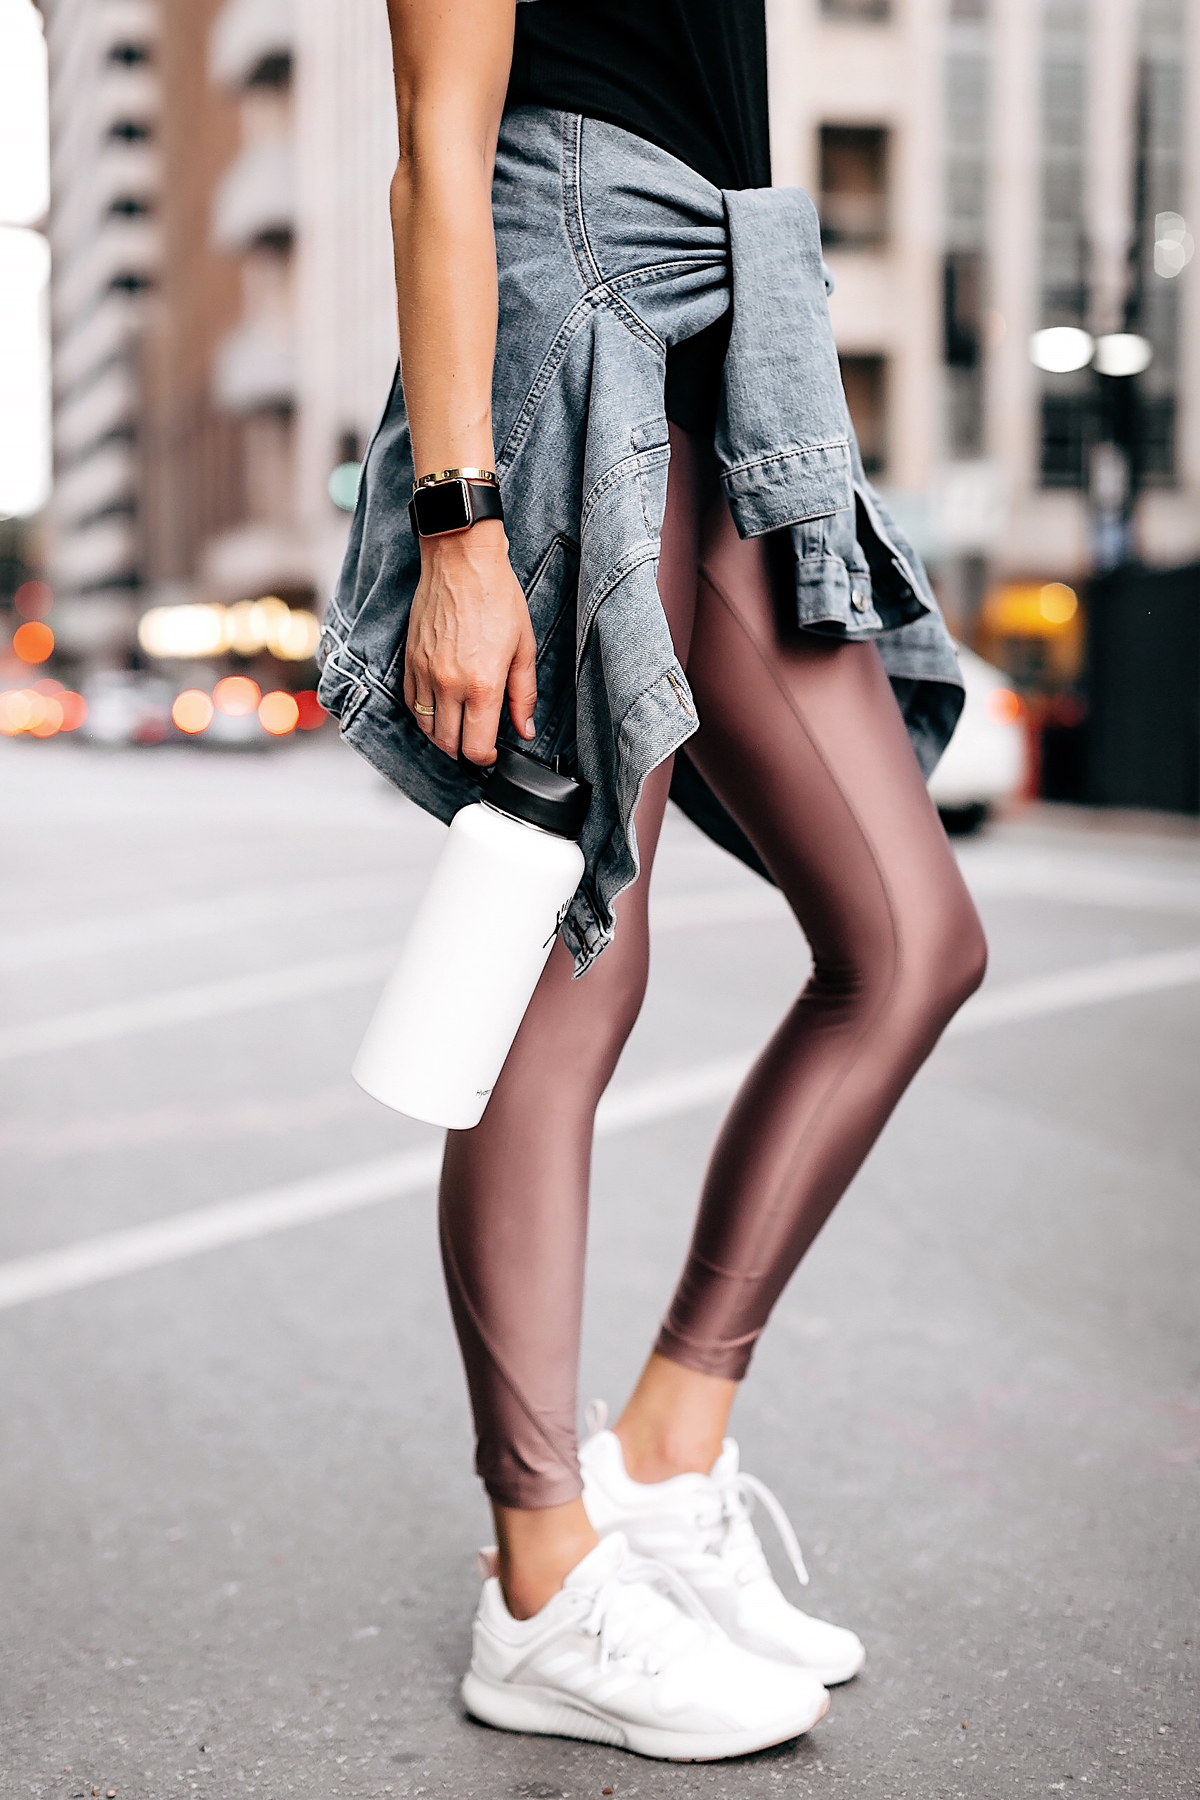 Woman Wearing Athleisure Workout Outfit Nike Mauve Leggings Denim Jacket Adidas EdgeBounce Running Shoes Apple Watch Hydro Flask Water Bottle White Fashion Jackson San Diego Fashion Blogger Street Style